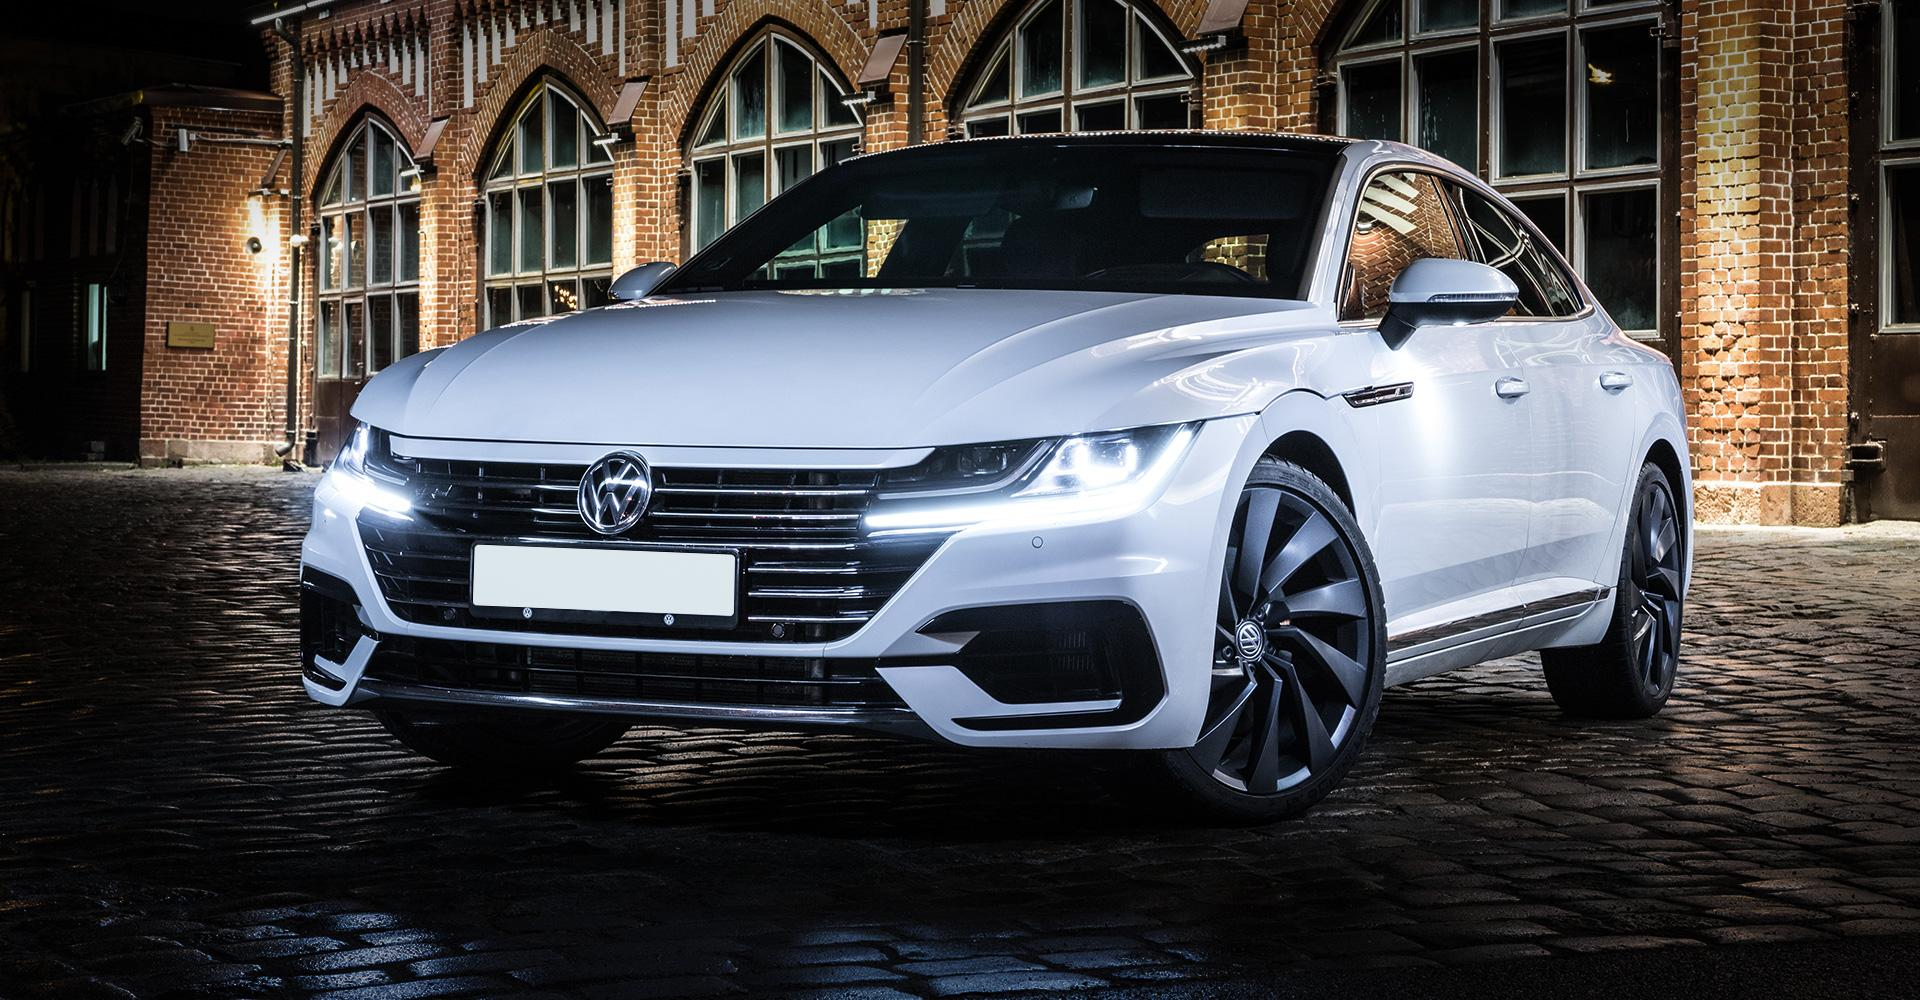 Used Cars for Sale   0260 cars, quality cars in East Sussex